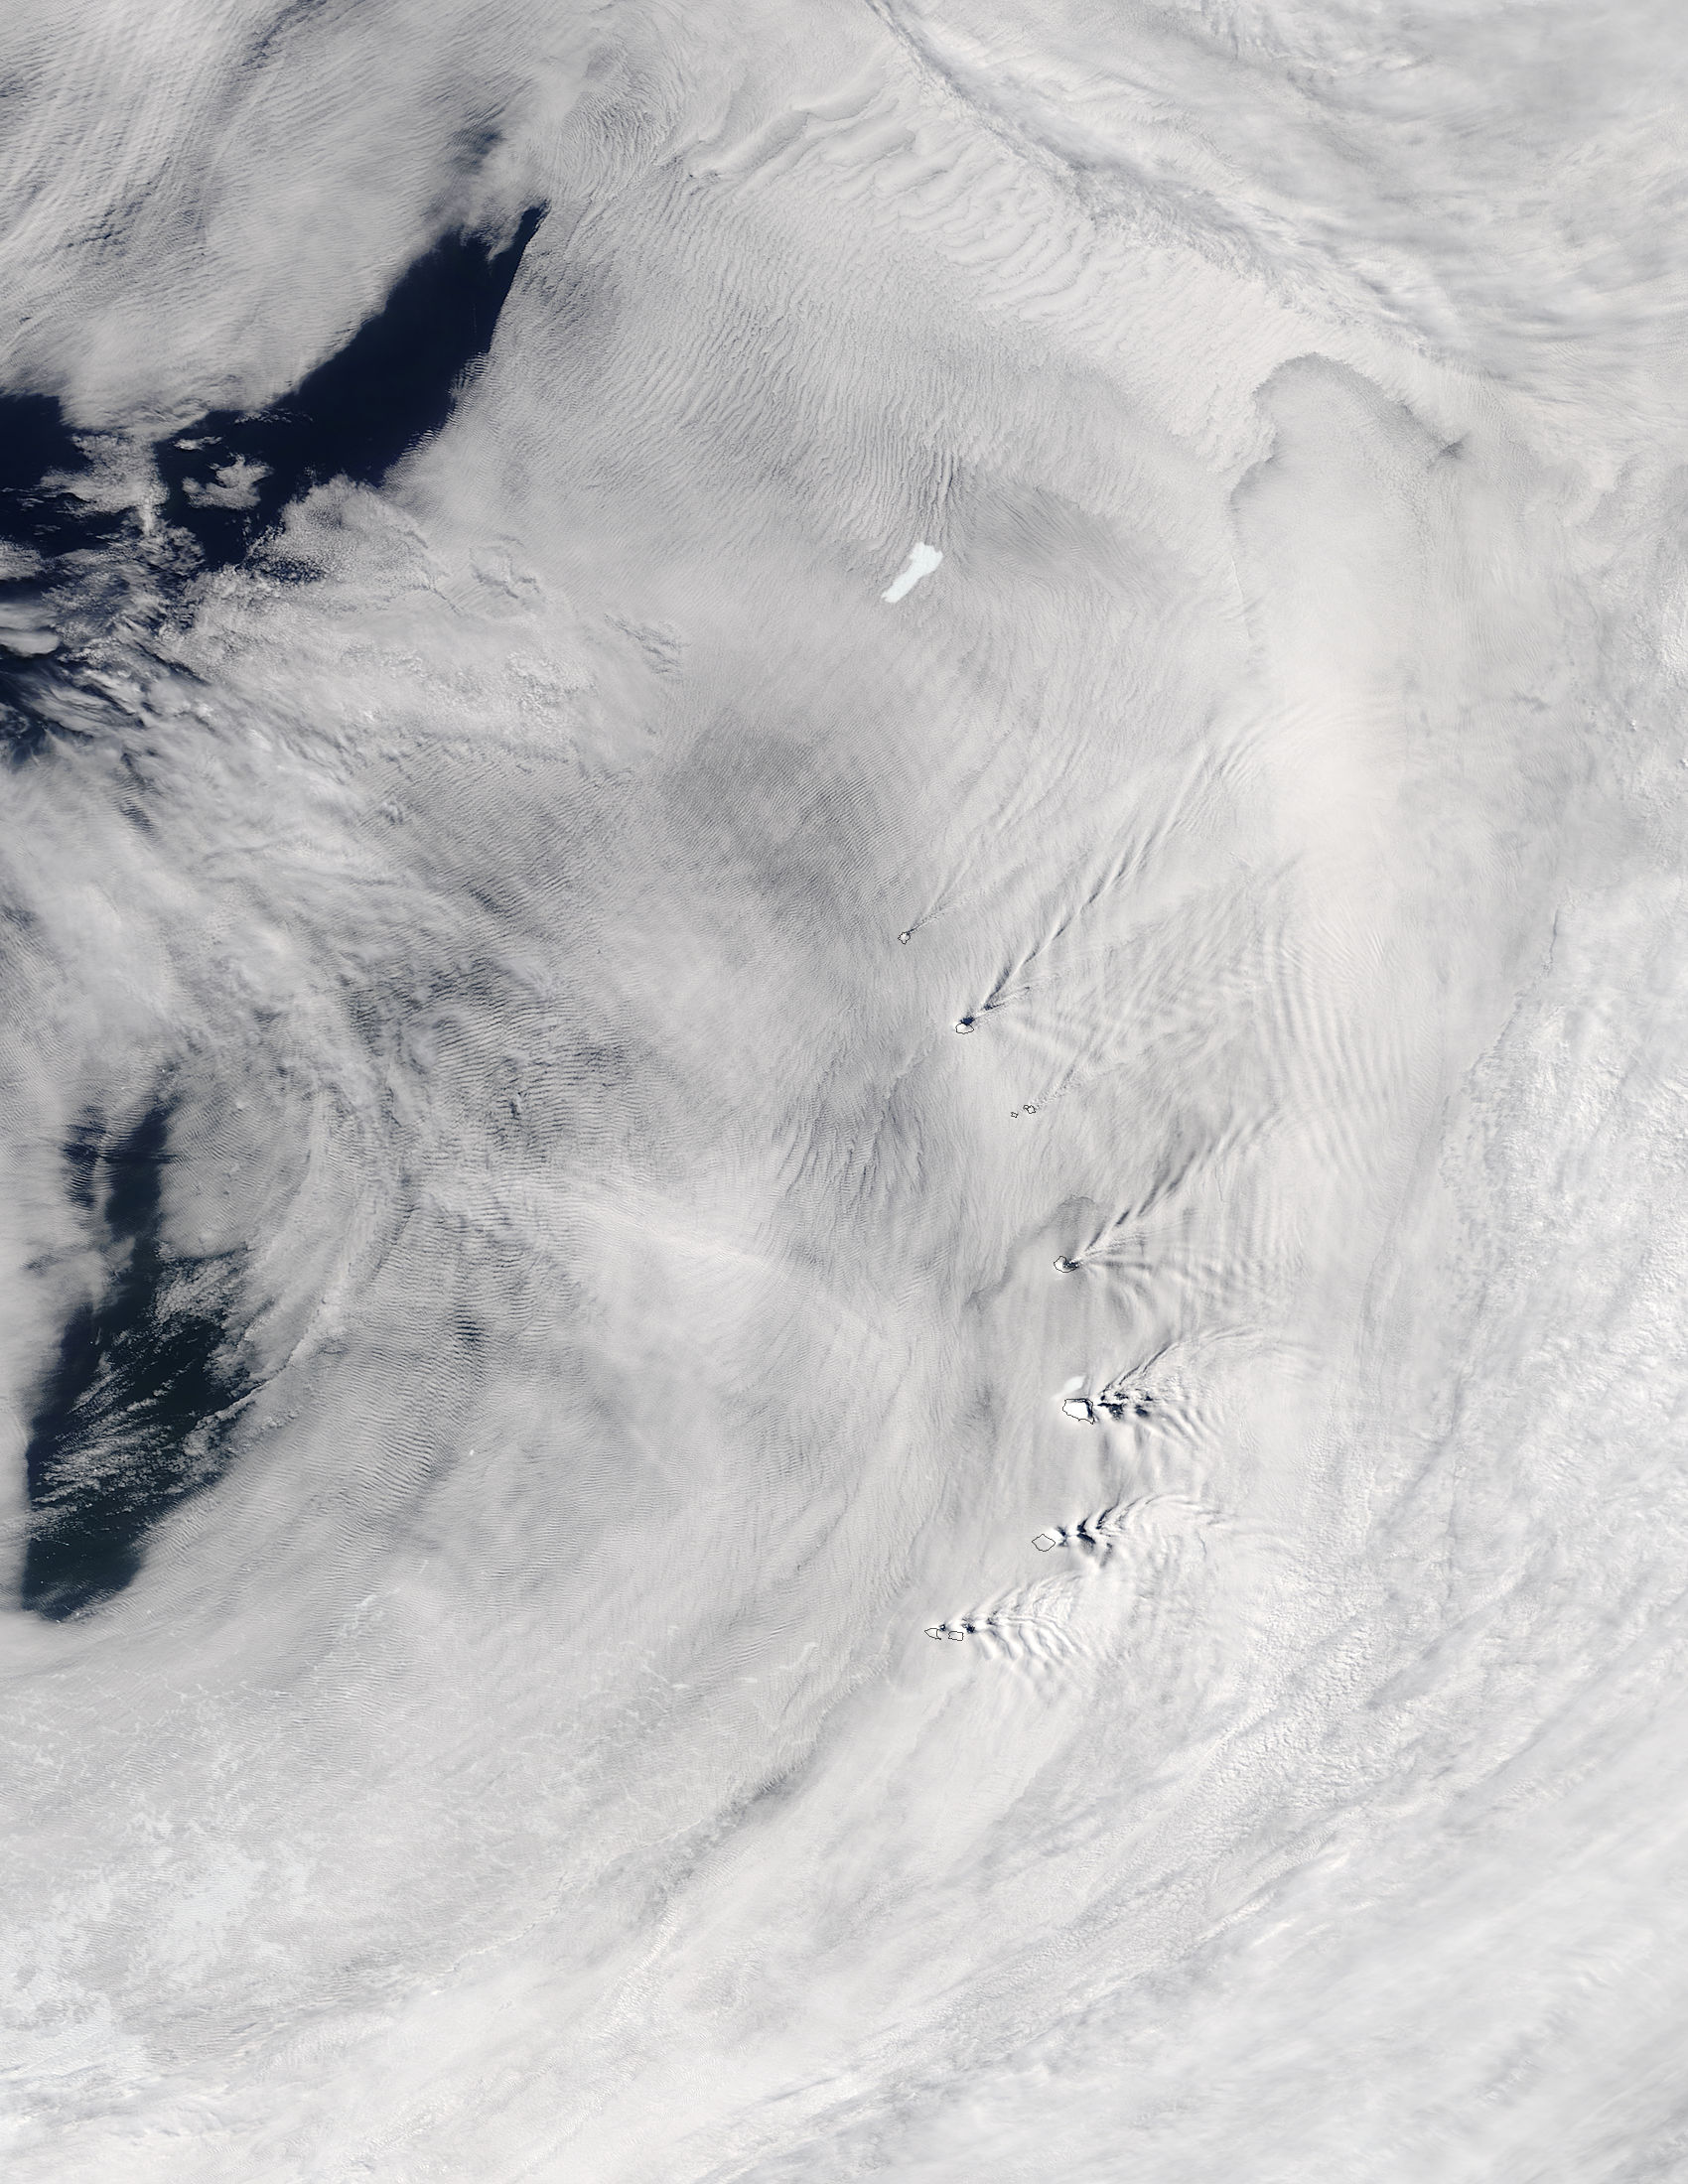 Ship-wave-shape wave clouds induced by South Sandwich Islands and Iceberg B09D - related image preview